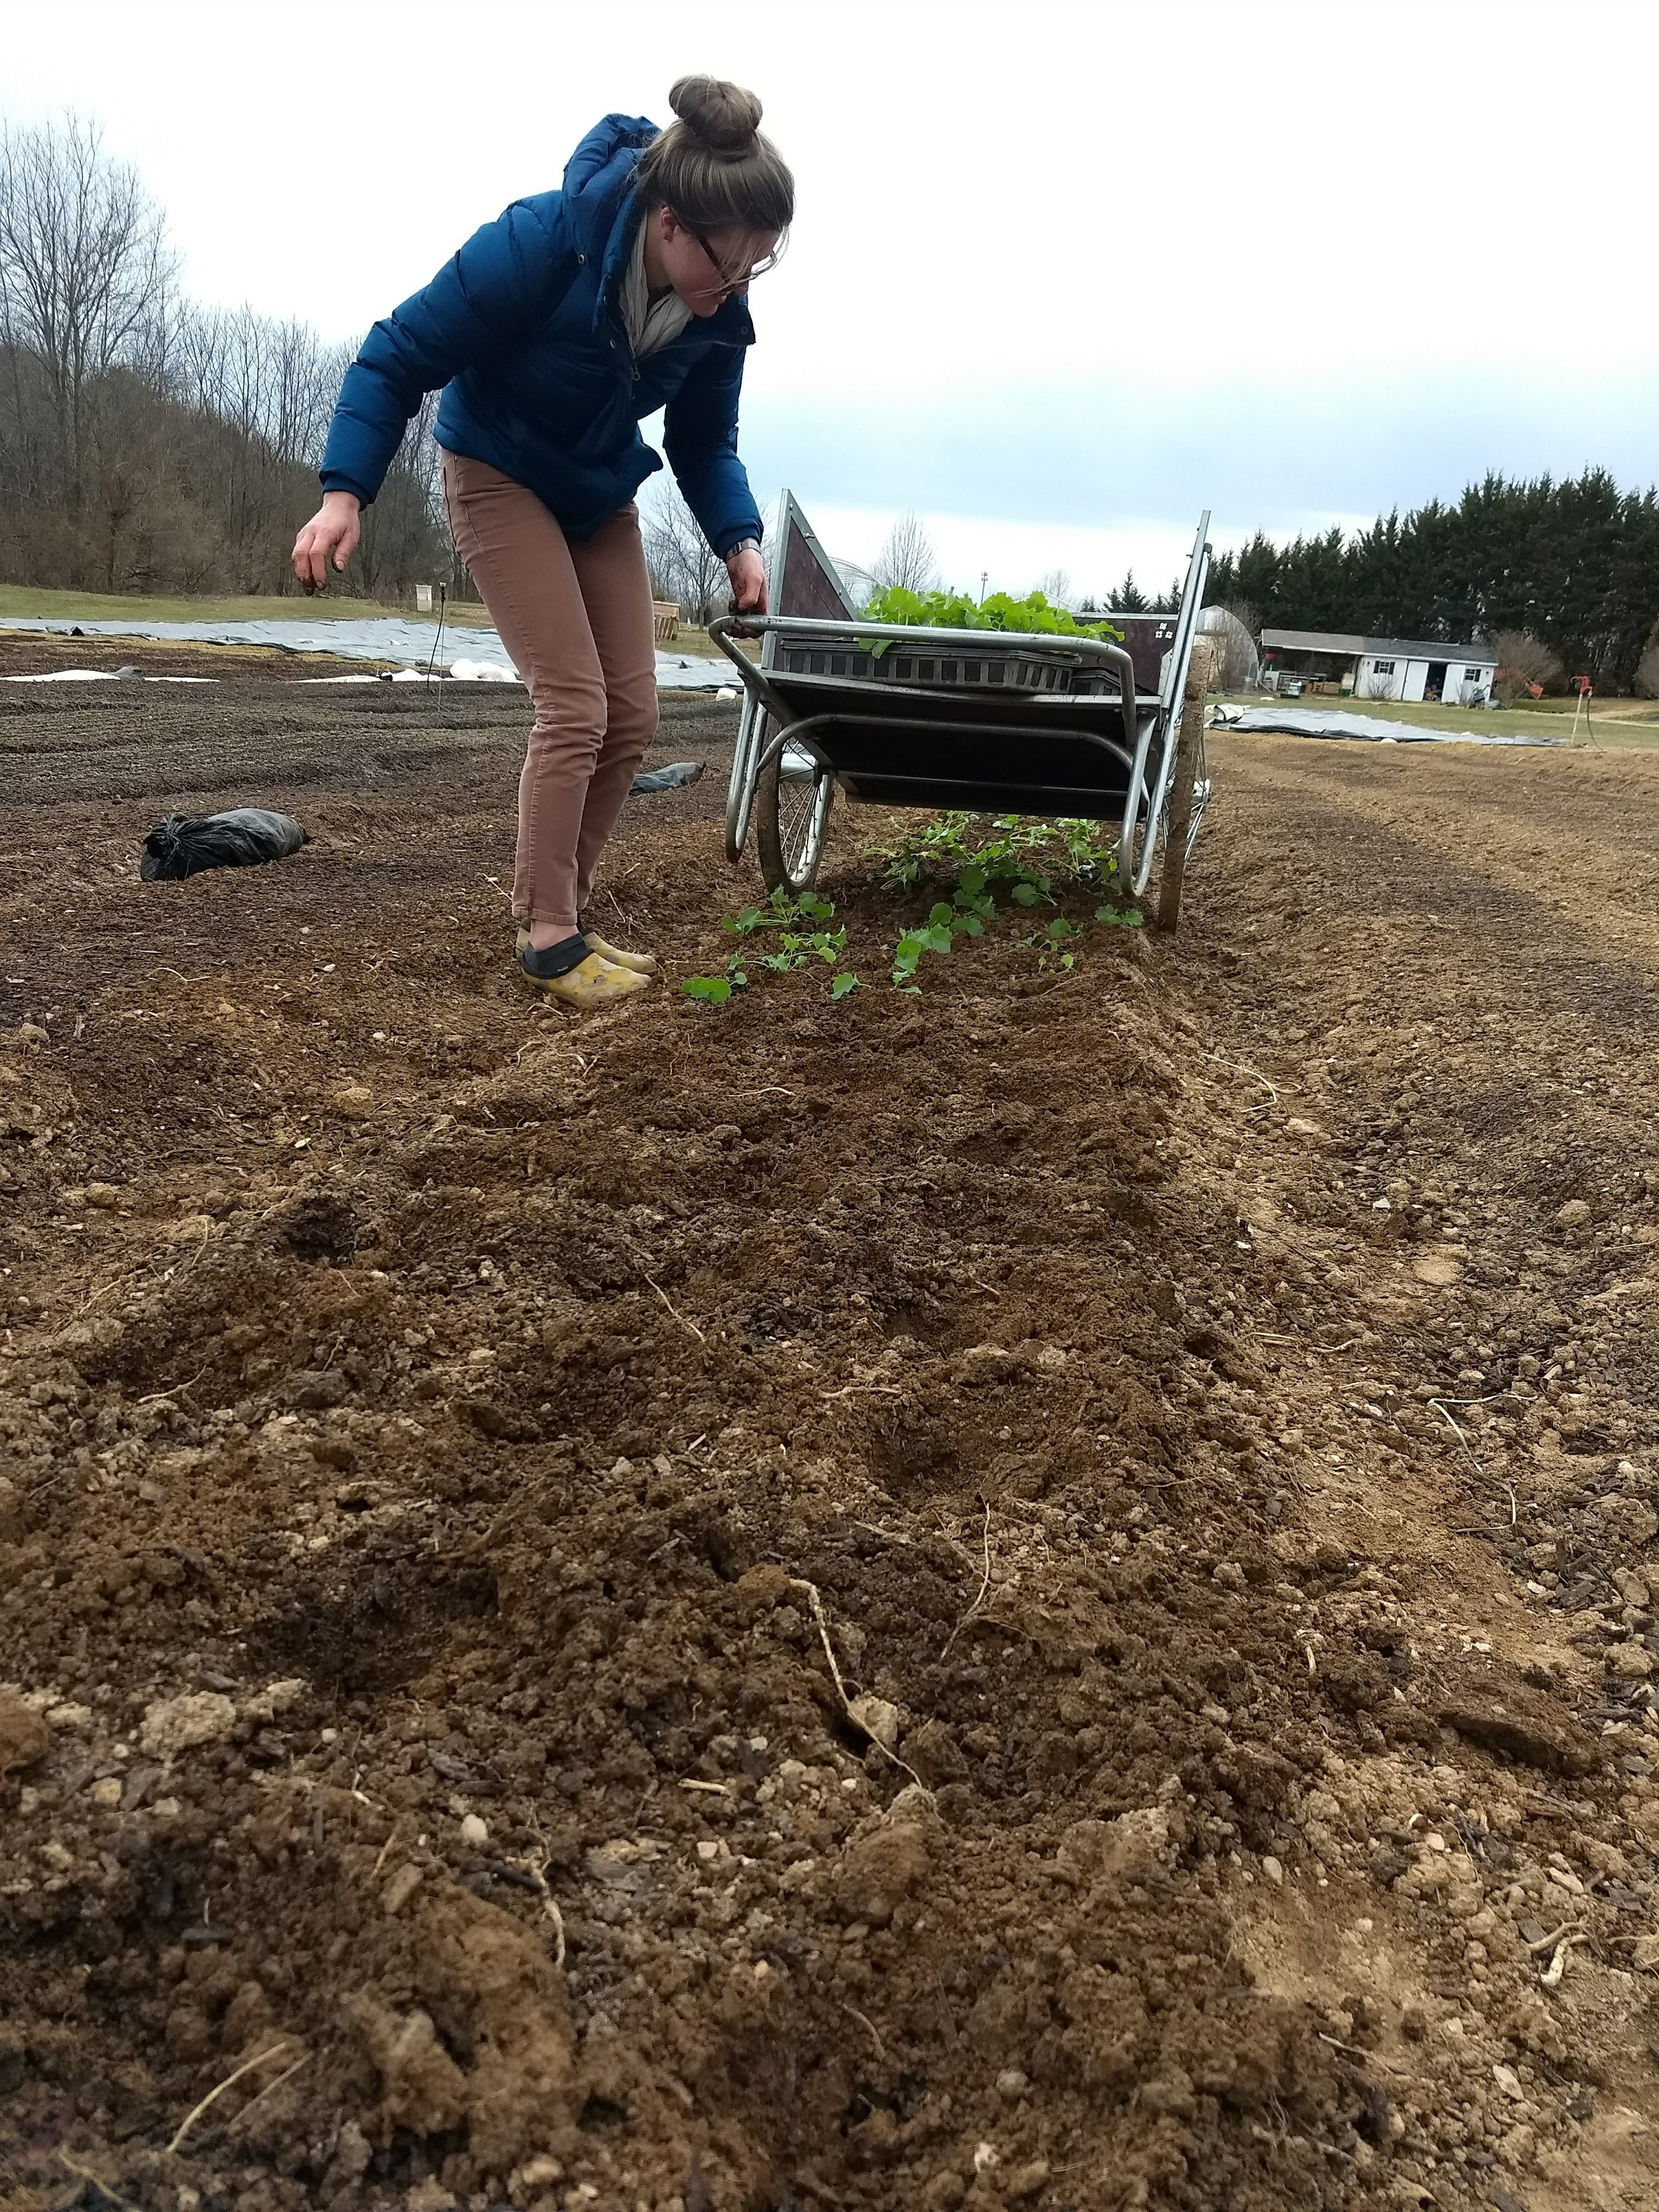 Transplanting baby kale with Philip early, early spring. We expected too much of them — the lingering cold and blistering winds proved too much for them. :(